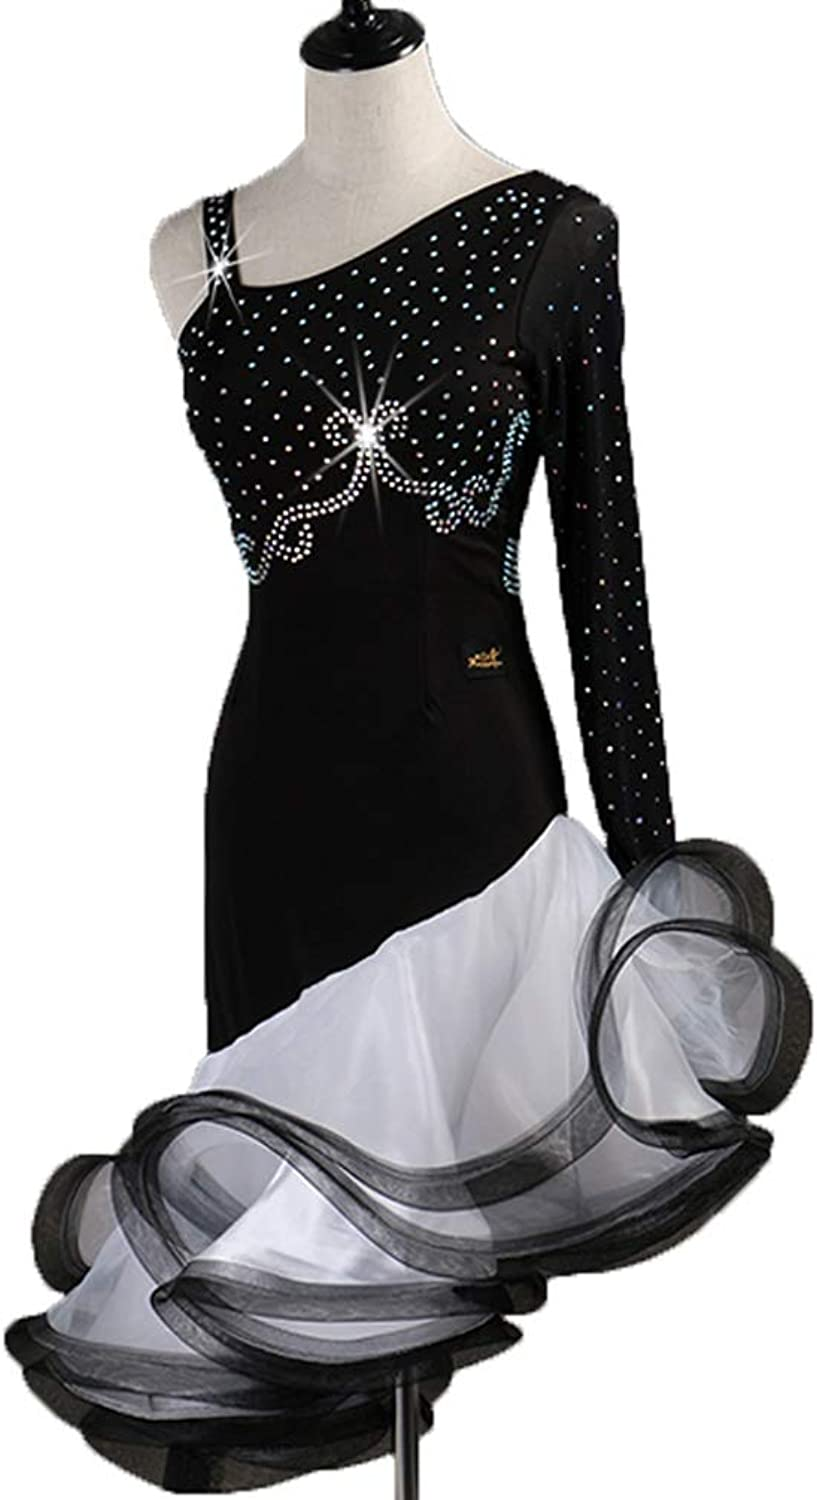 Latin Dance Dresses For Women or Ladies Single Sleeve Fashion Strapless Latin Dance Wear Stage Costume Professional Performance Costume